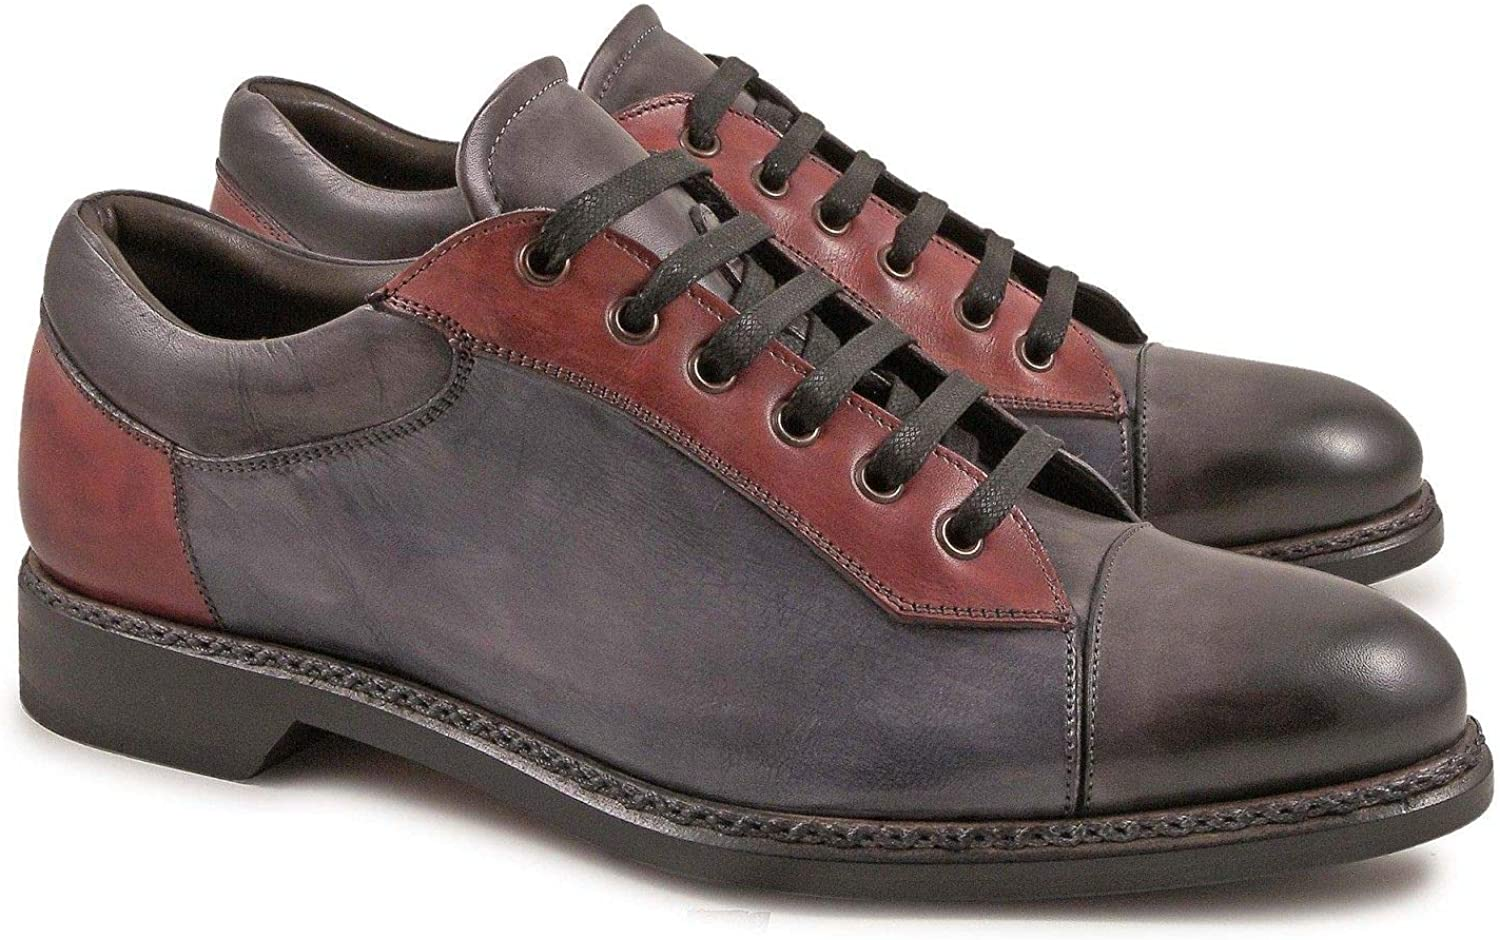 Season Outlet LEONARDO SHOES Luxury Fashion Mens 4848OXFORDDELAVEGRIGIO Multicolor Sneakers